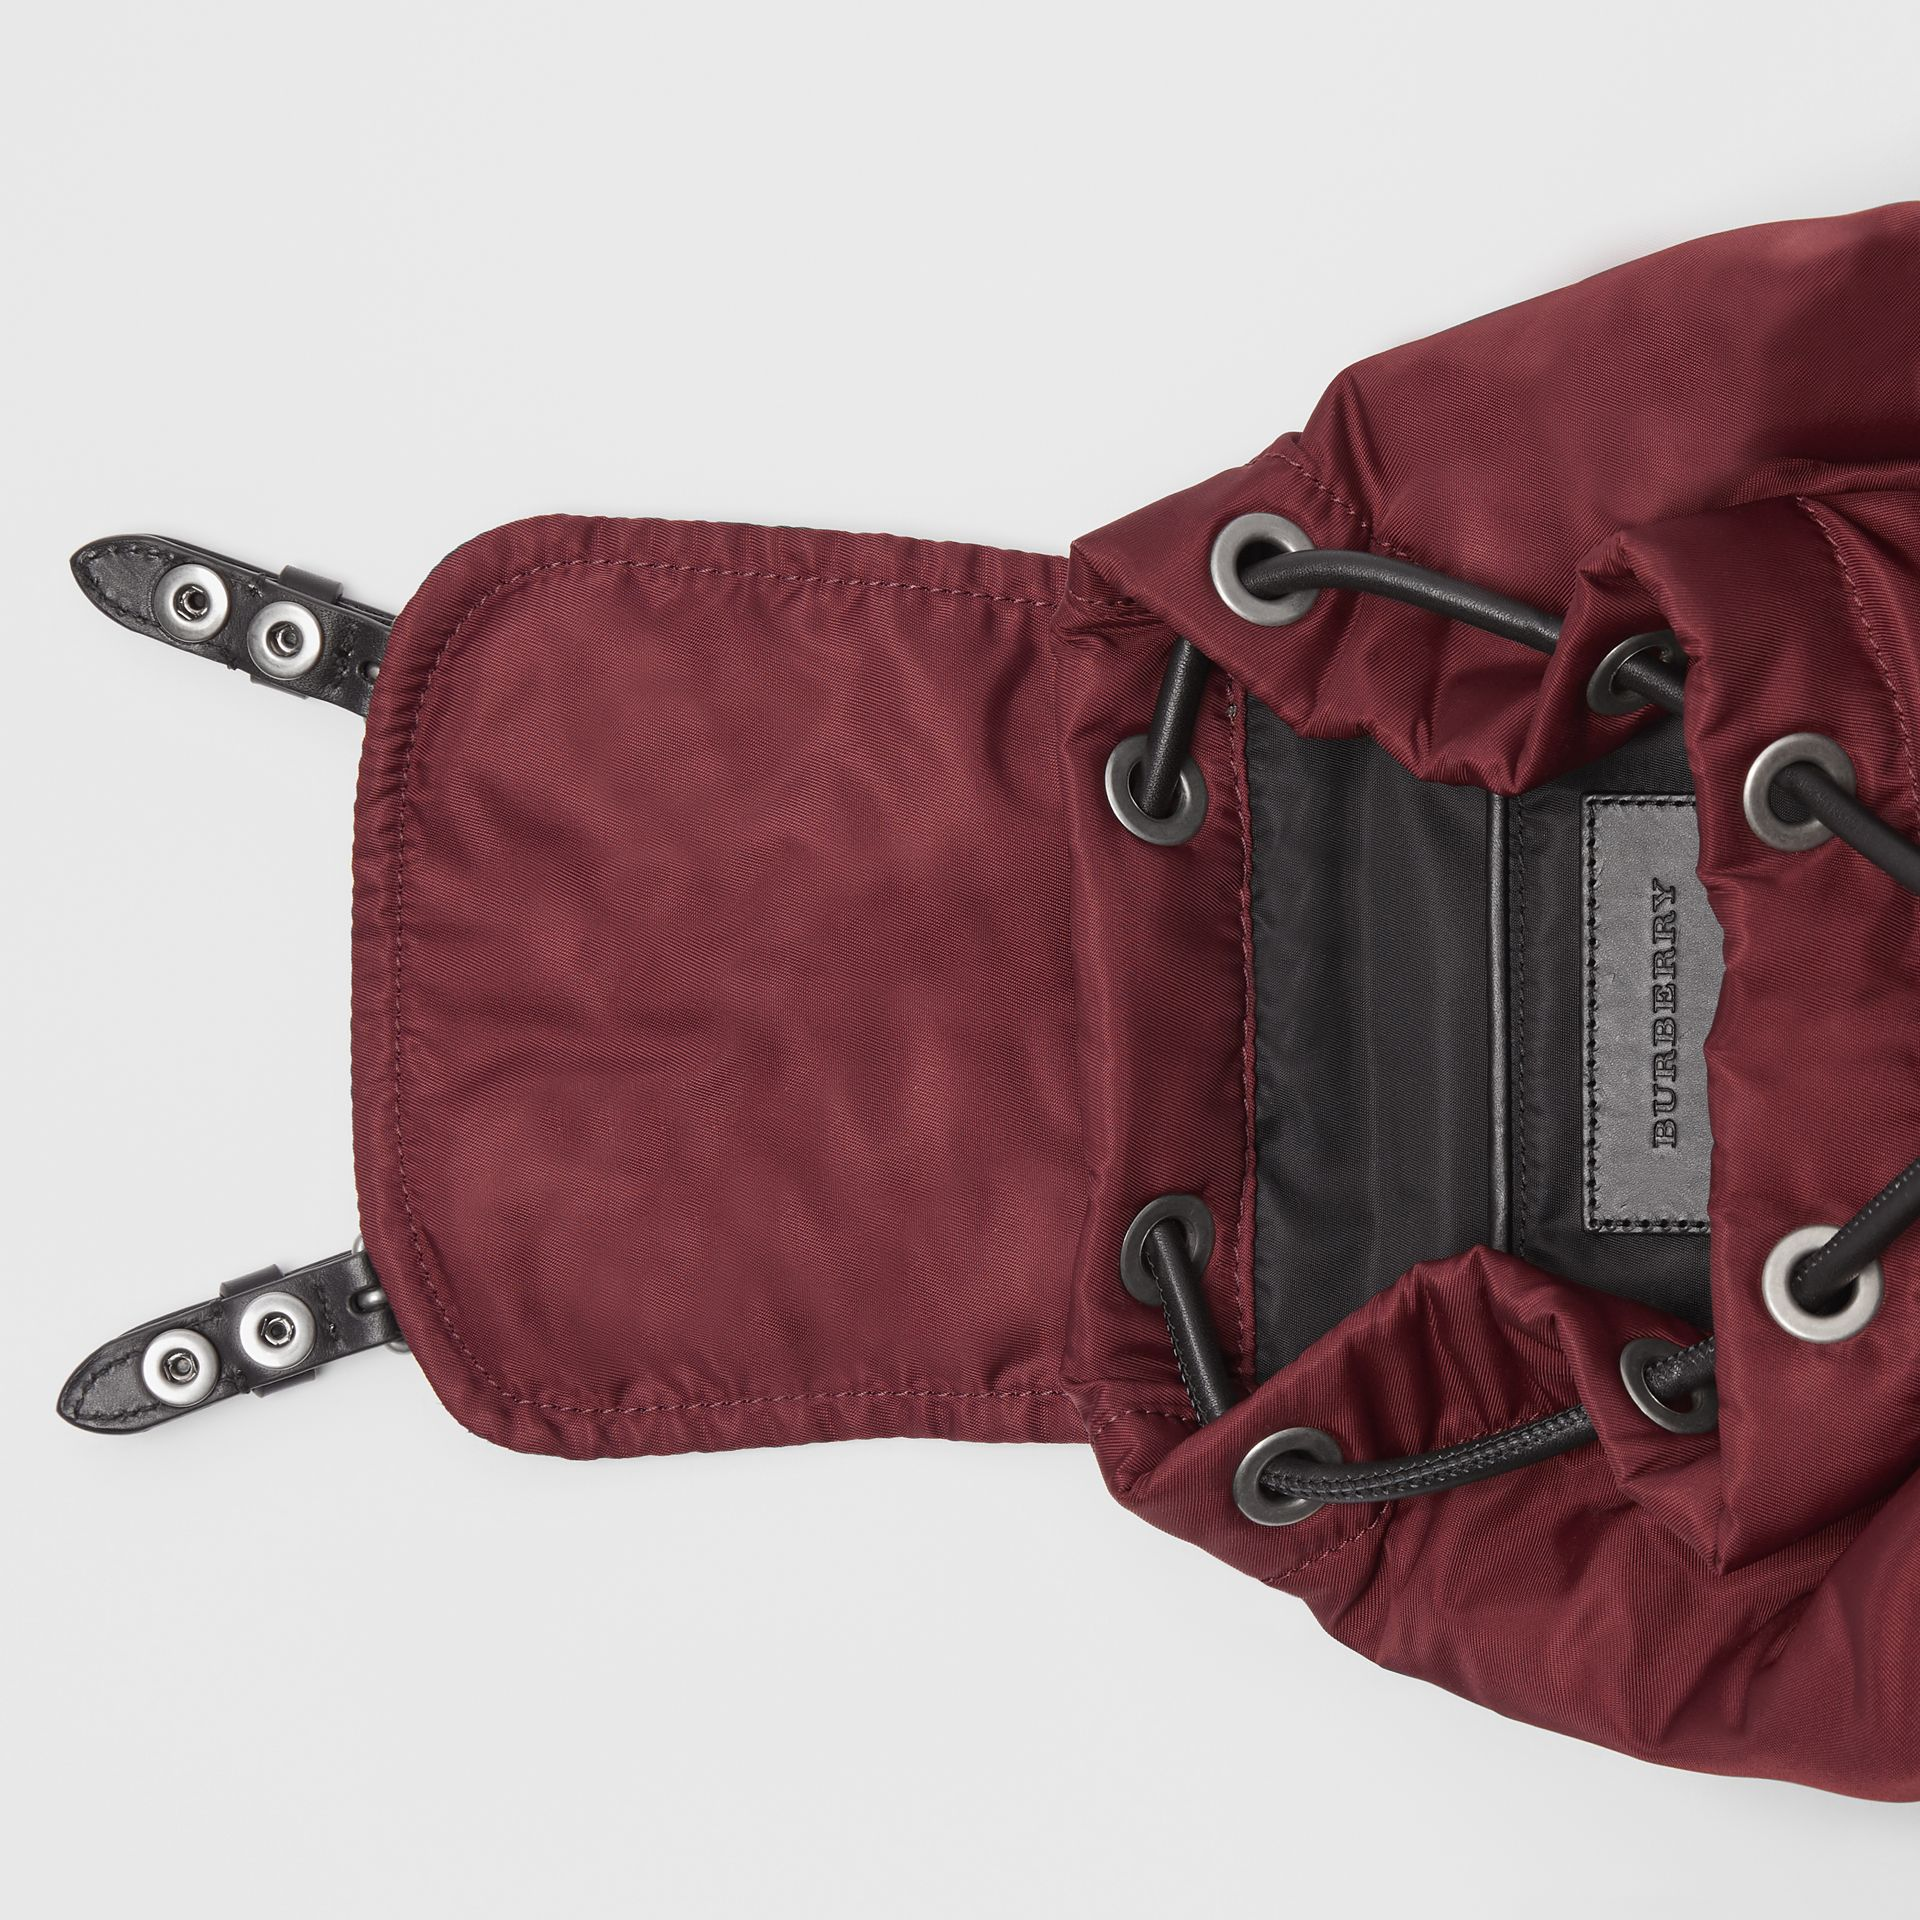 The Small Crossbody Rucksack in Puffer Nylon in Burgundy Red - Women | Burberry Singapore - gallery image 5